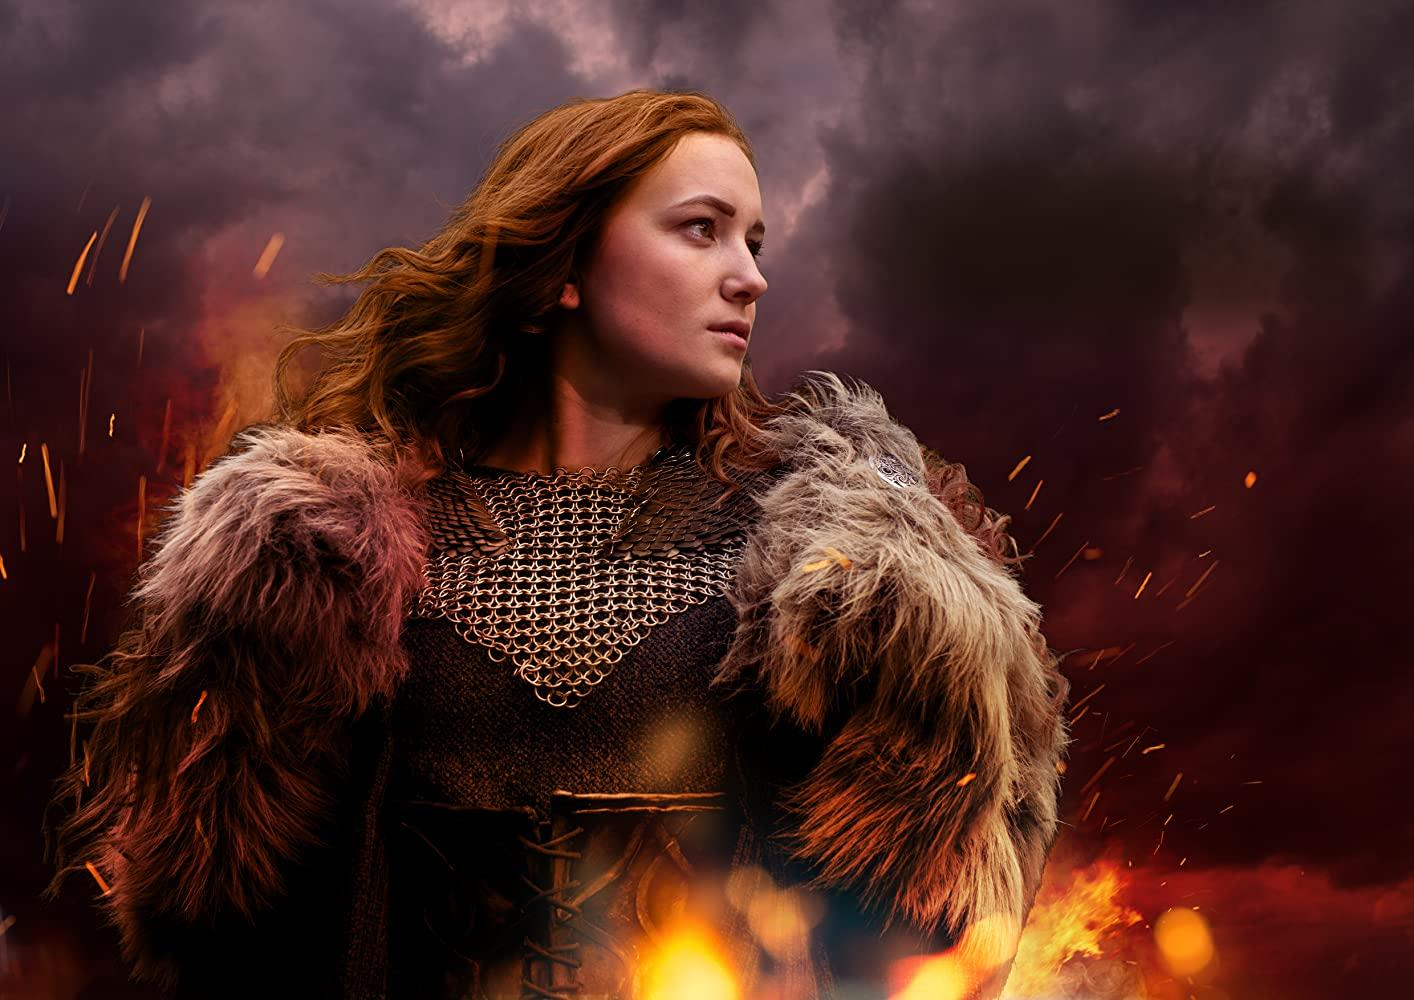 مشاهدة فيلم Boudica Rise Of The Warrior Queen (2019) مترجم HD اون لاين